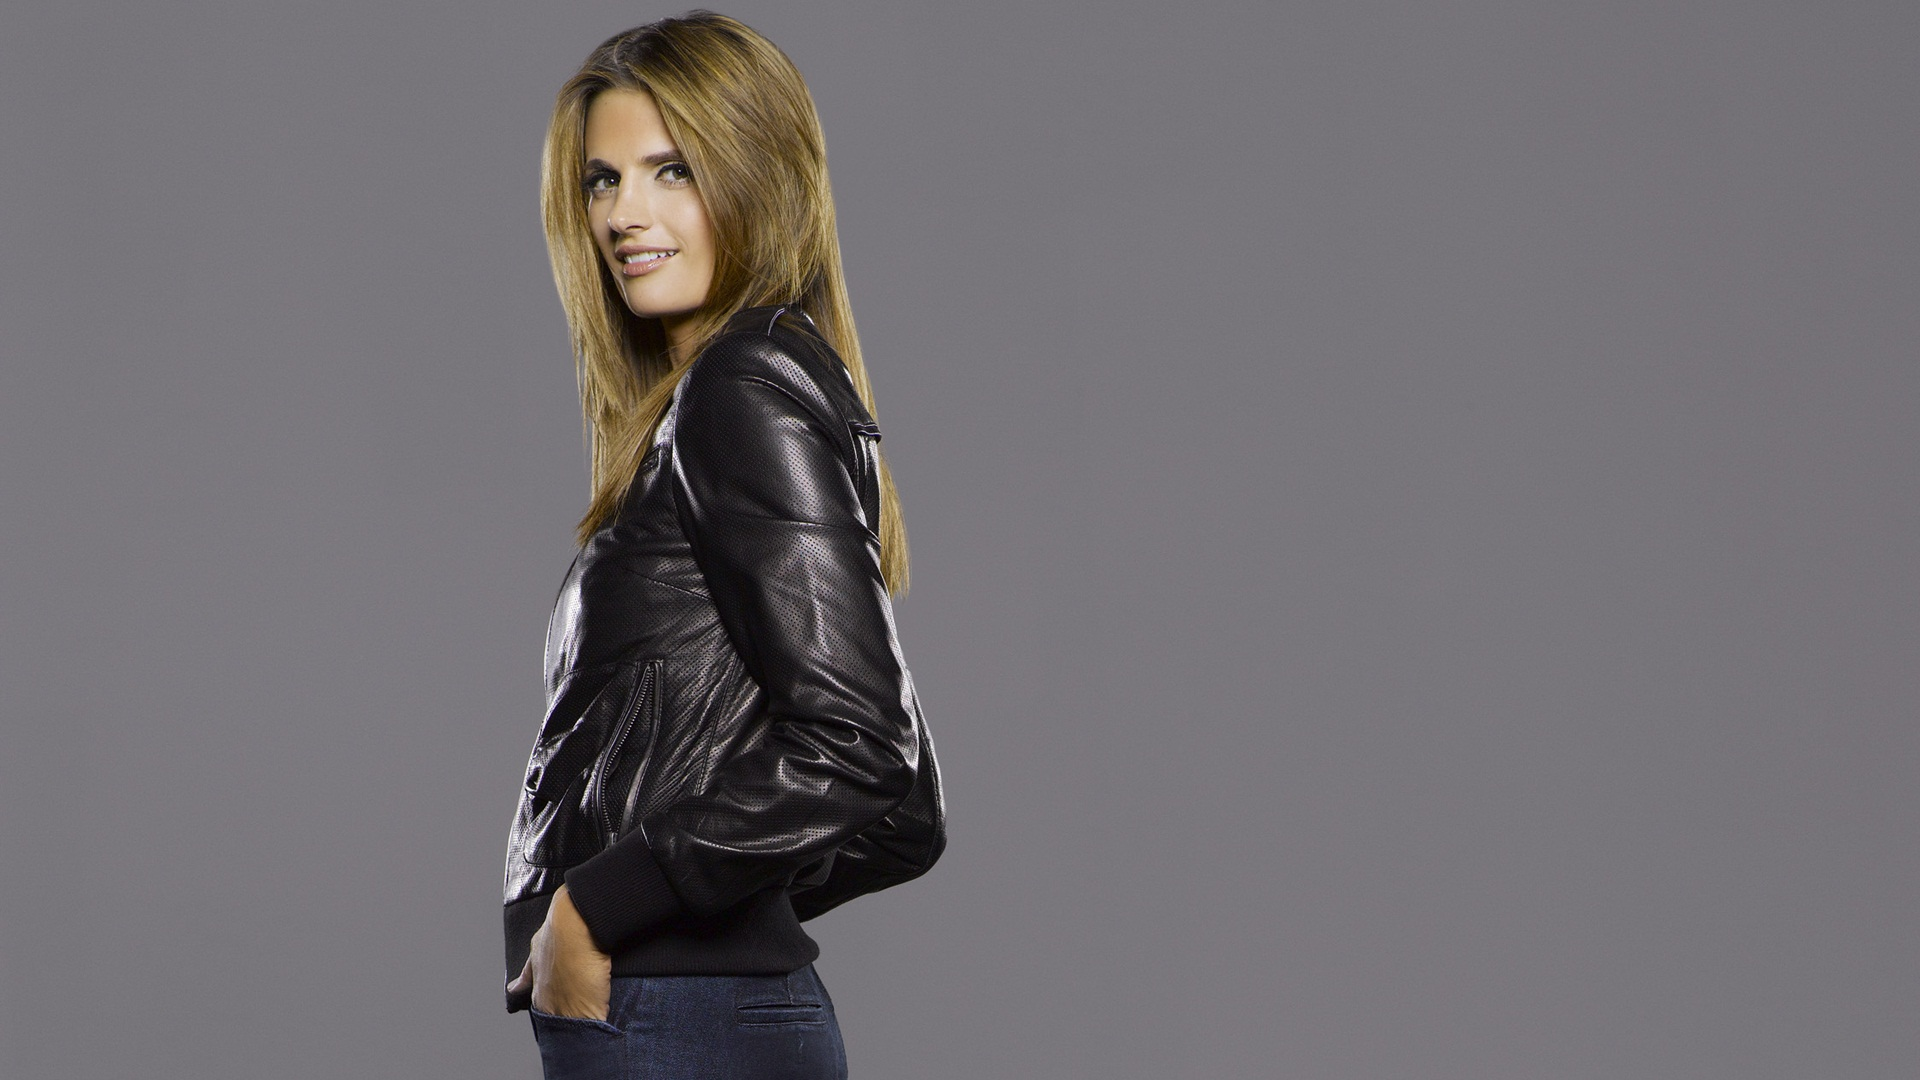 Free Stana Katic Wallpaper